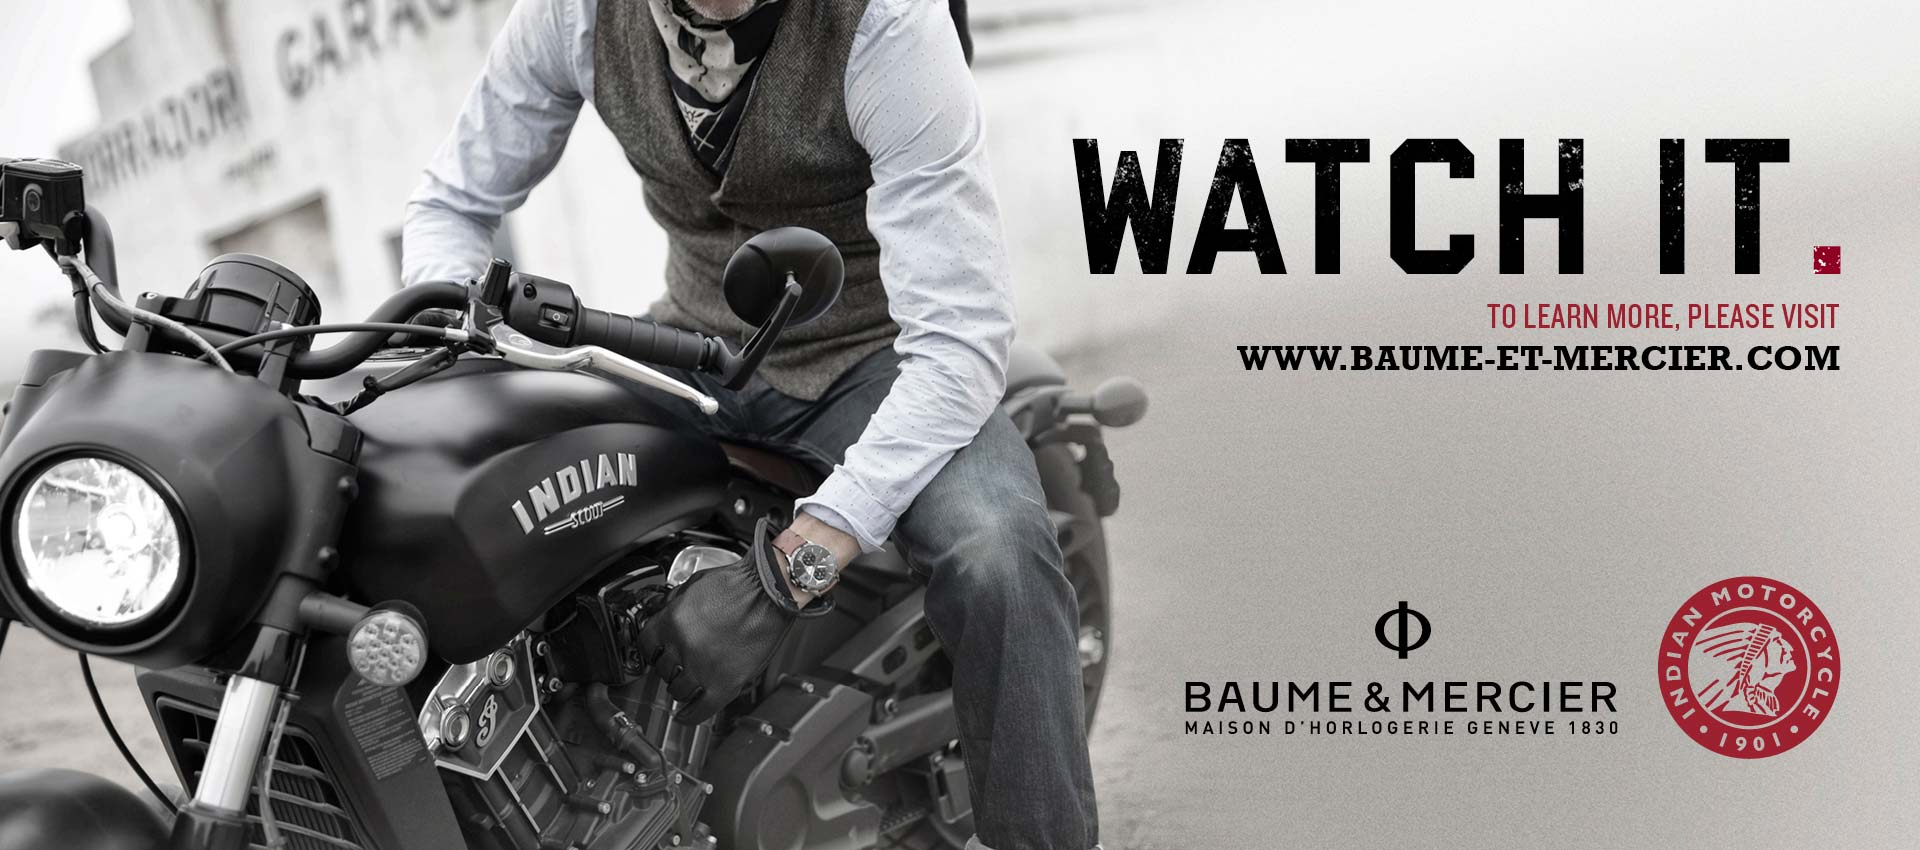 Indian Motorcycle & Baume et Mercier